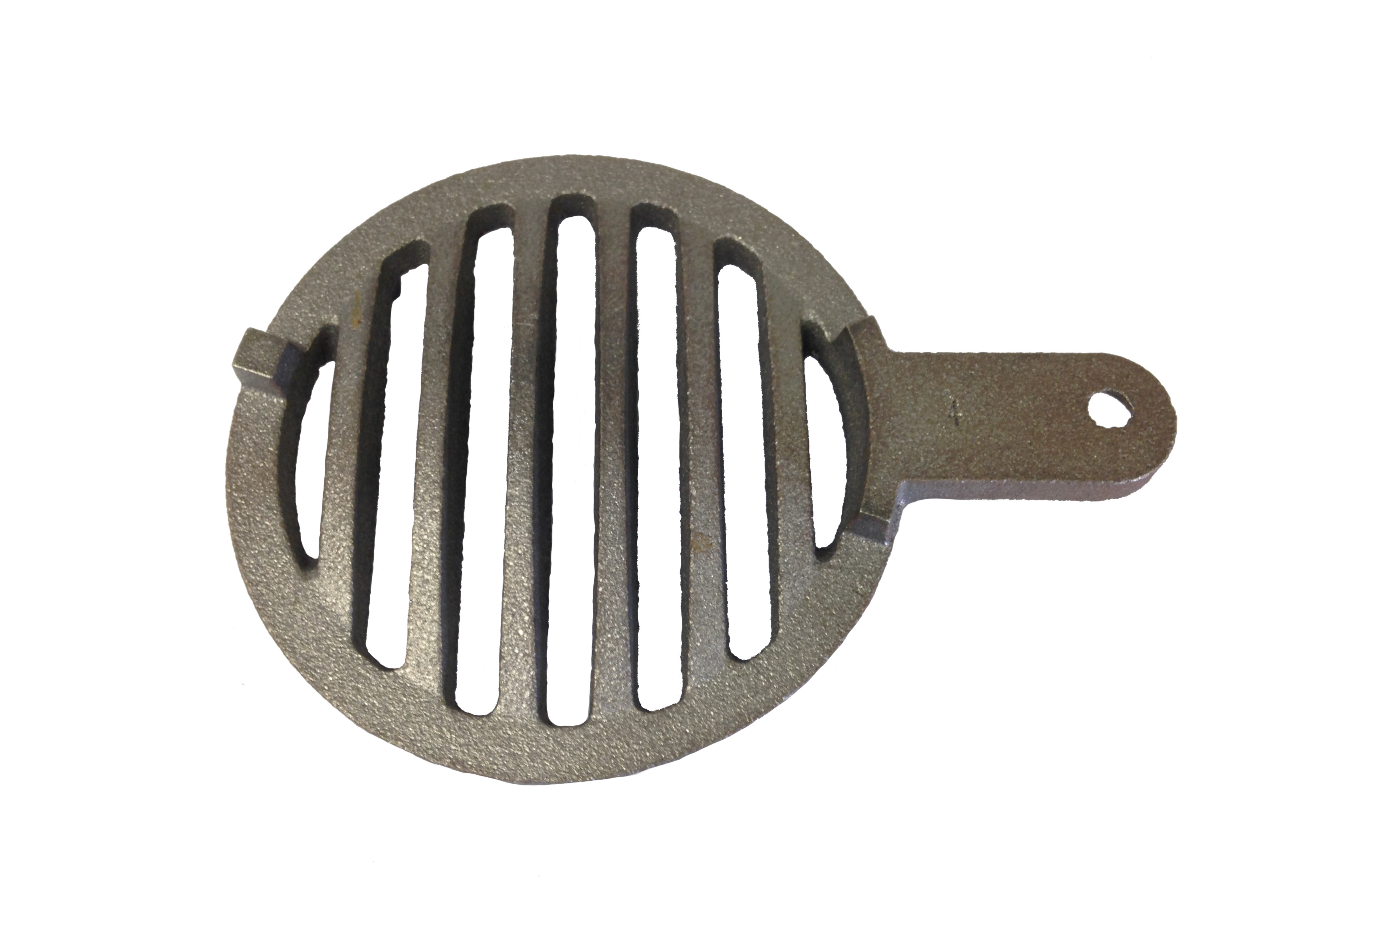 A replacement Grate suitable for Morso Squirrel 1440 stoves.